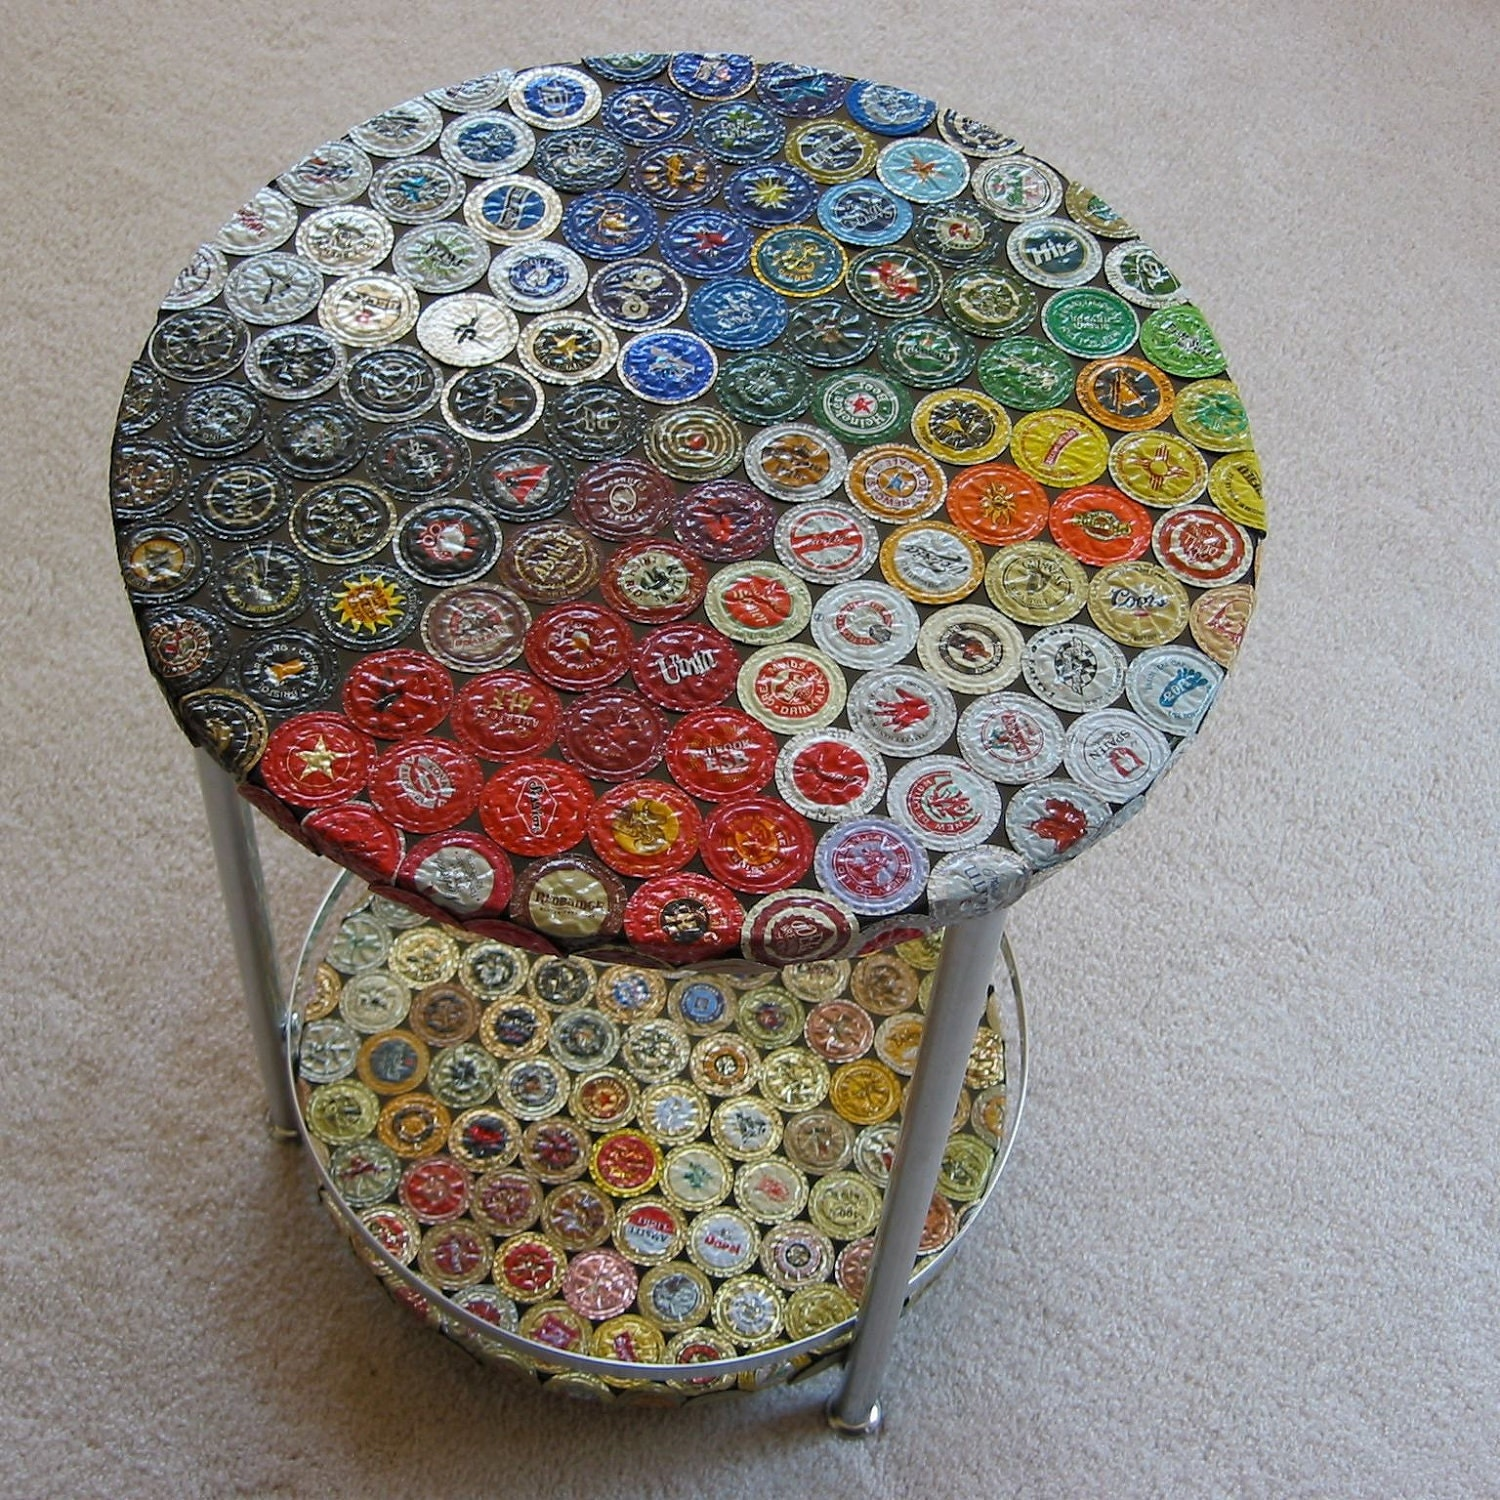 double decker bottle cap table. Black Bedroom Furniture Sets. Home Design Ideas